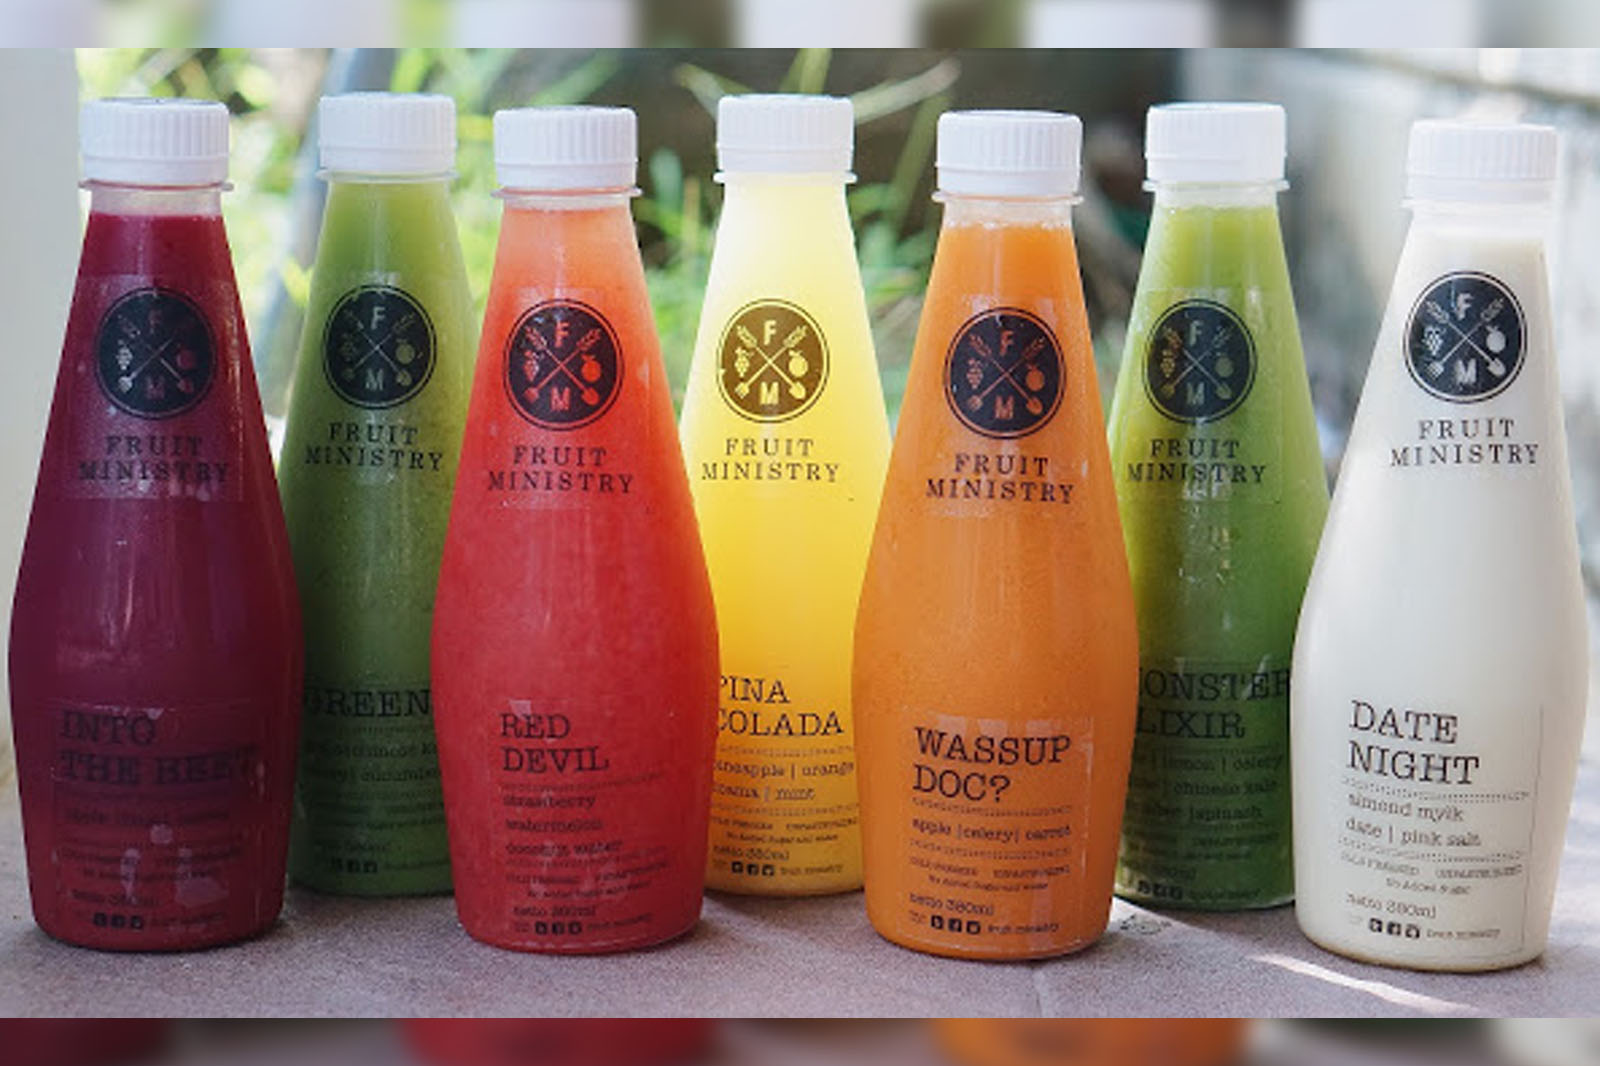 Trying Out One Day Juice Detox with Fruit Ministry! (Review